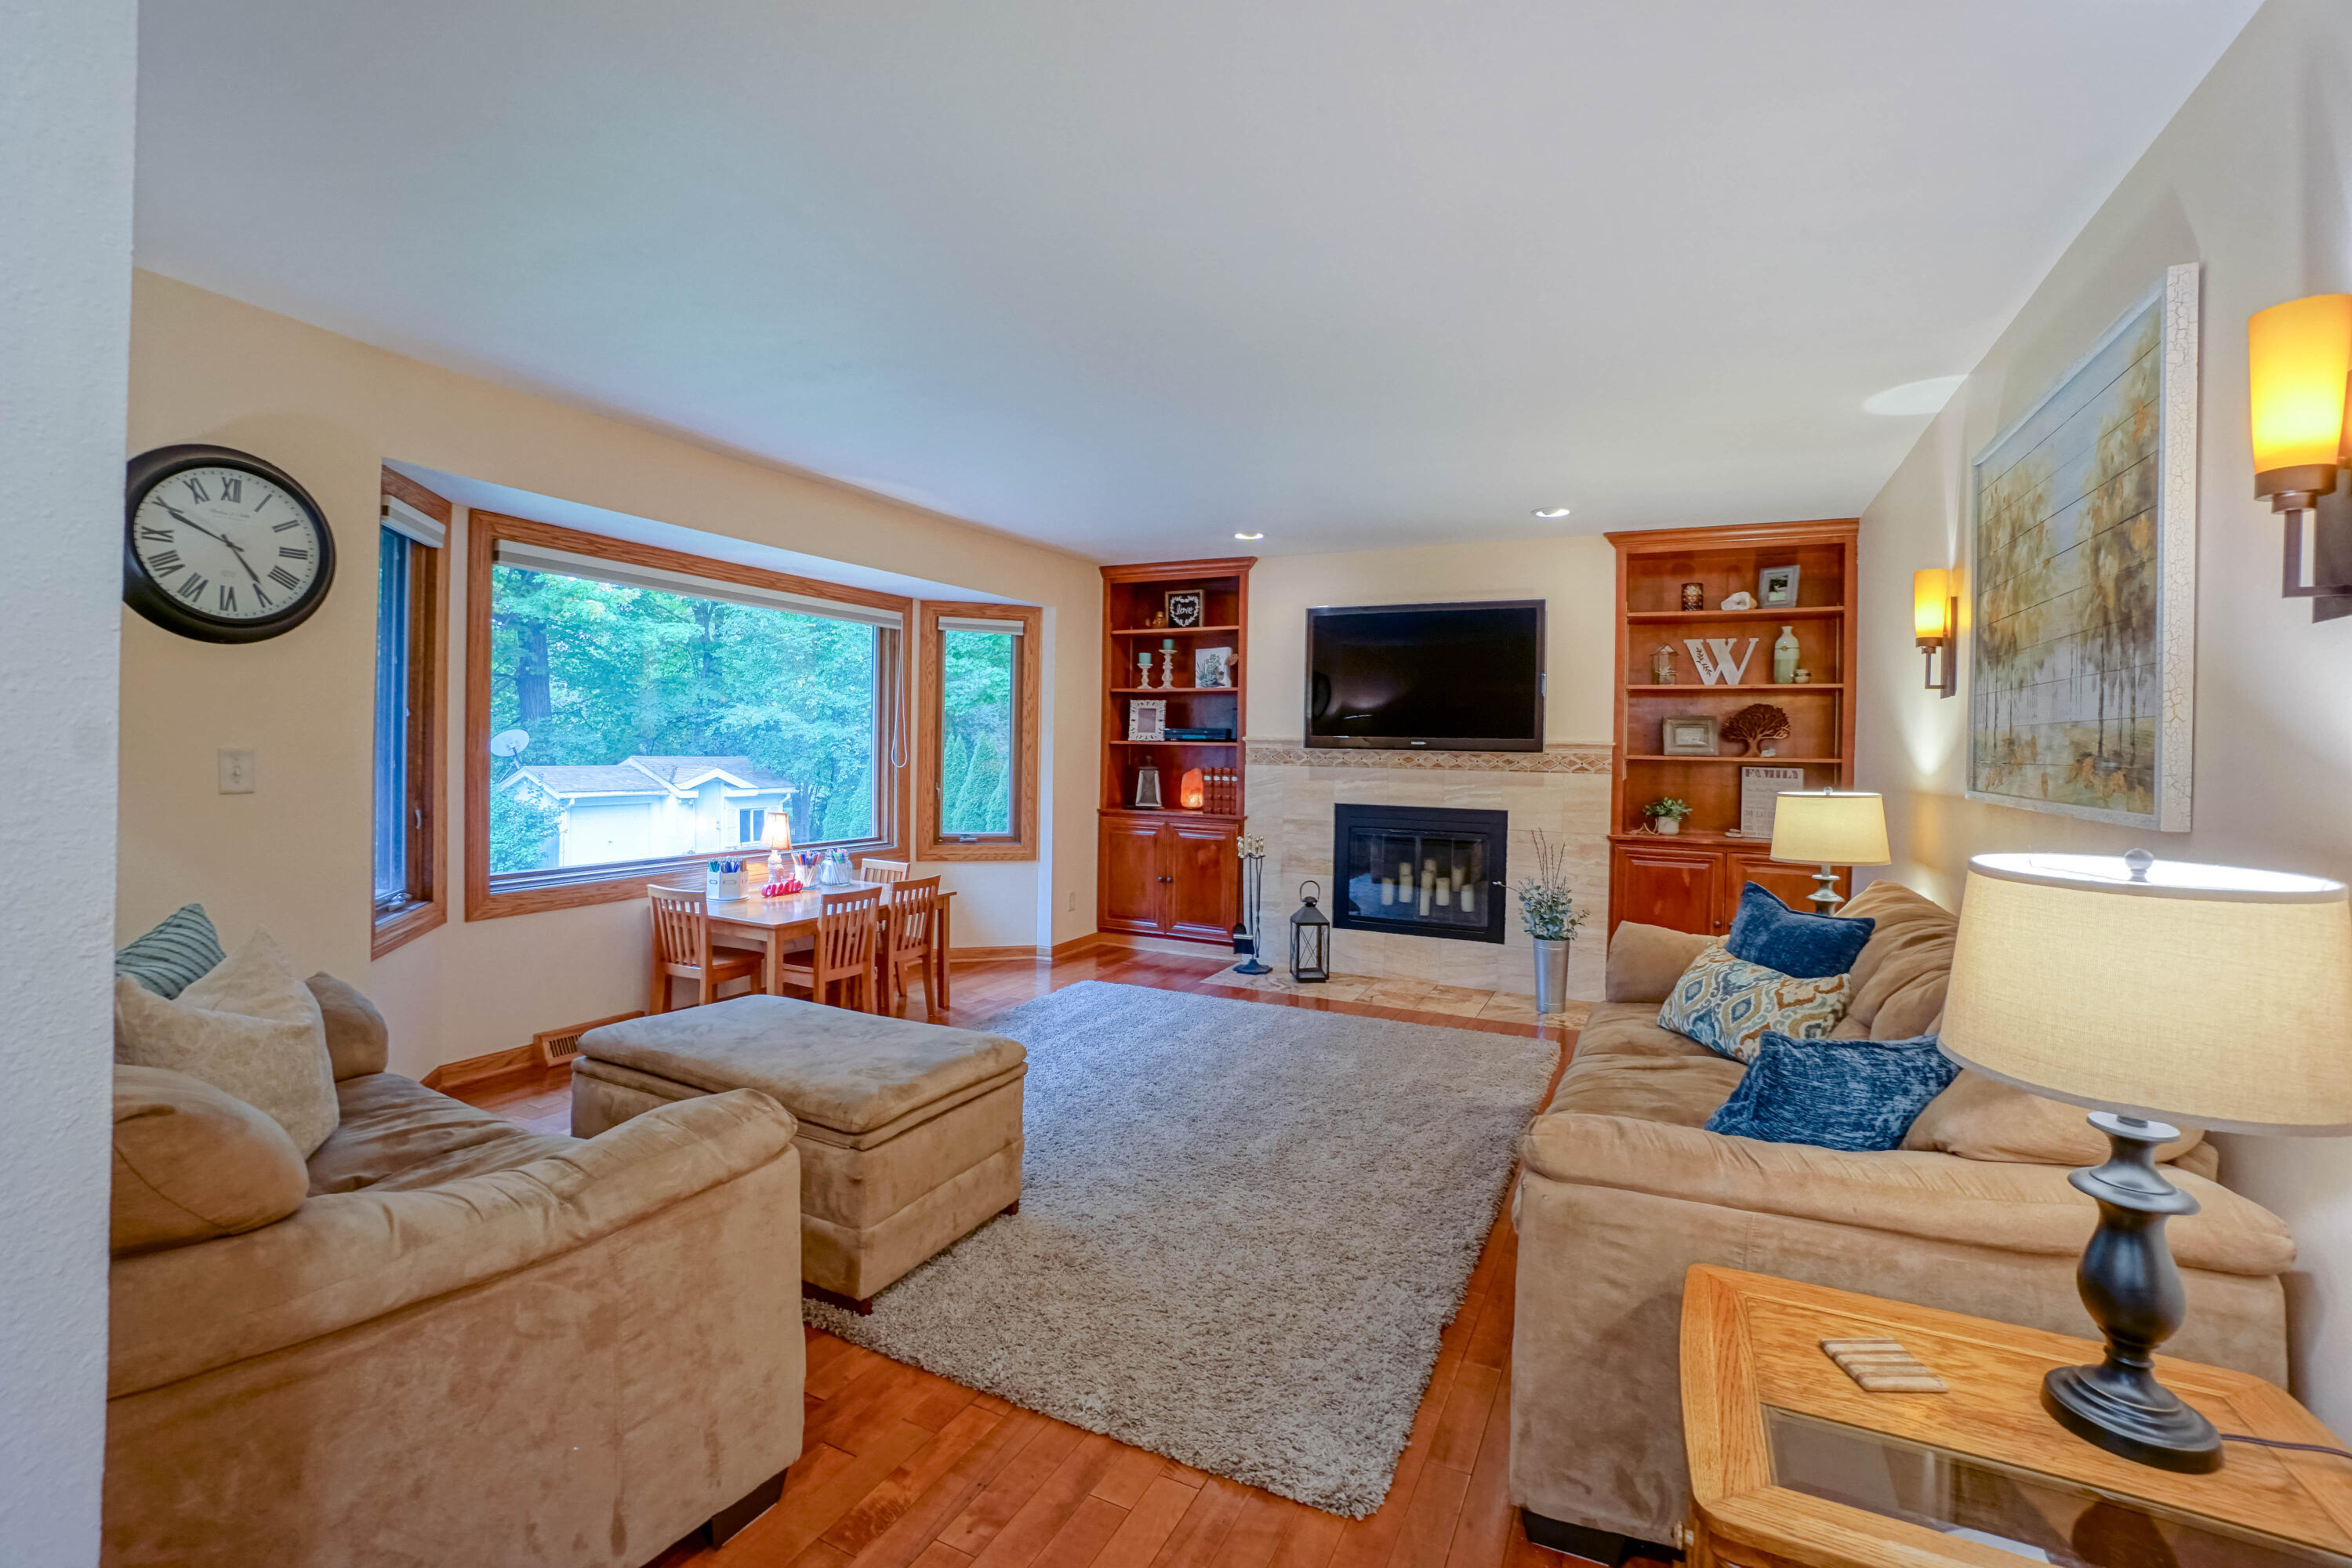 16940 Tanglewood Dr, Brookfield, Wisconsin 53005, 5 Bedrooms Bedrooms, 10 Rooms Rooms,2 BathroomsBathrooms,Single-Family,For Sale,Tanglewood Dr,1766992